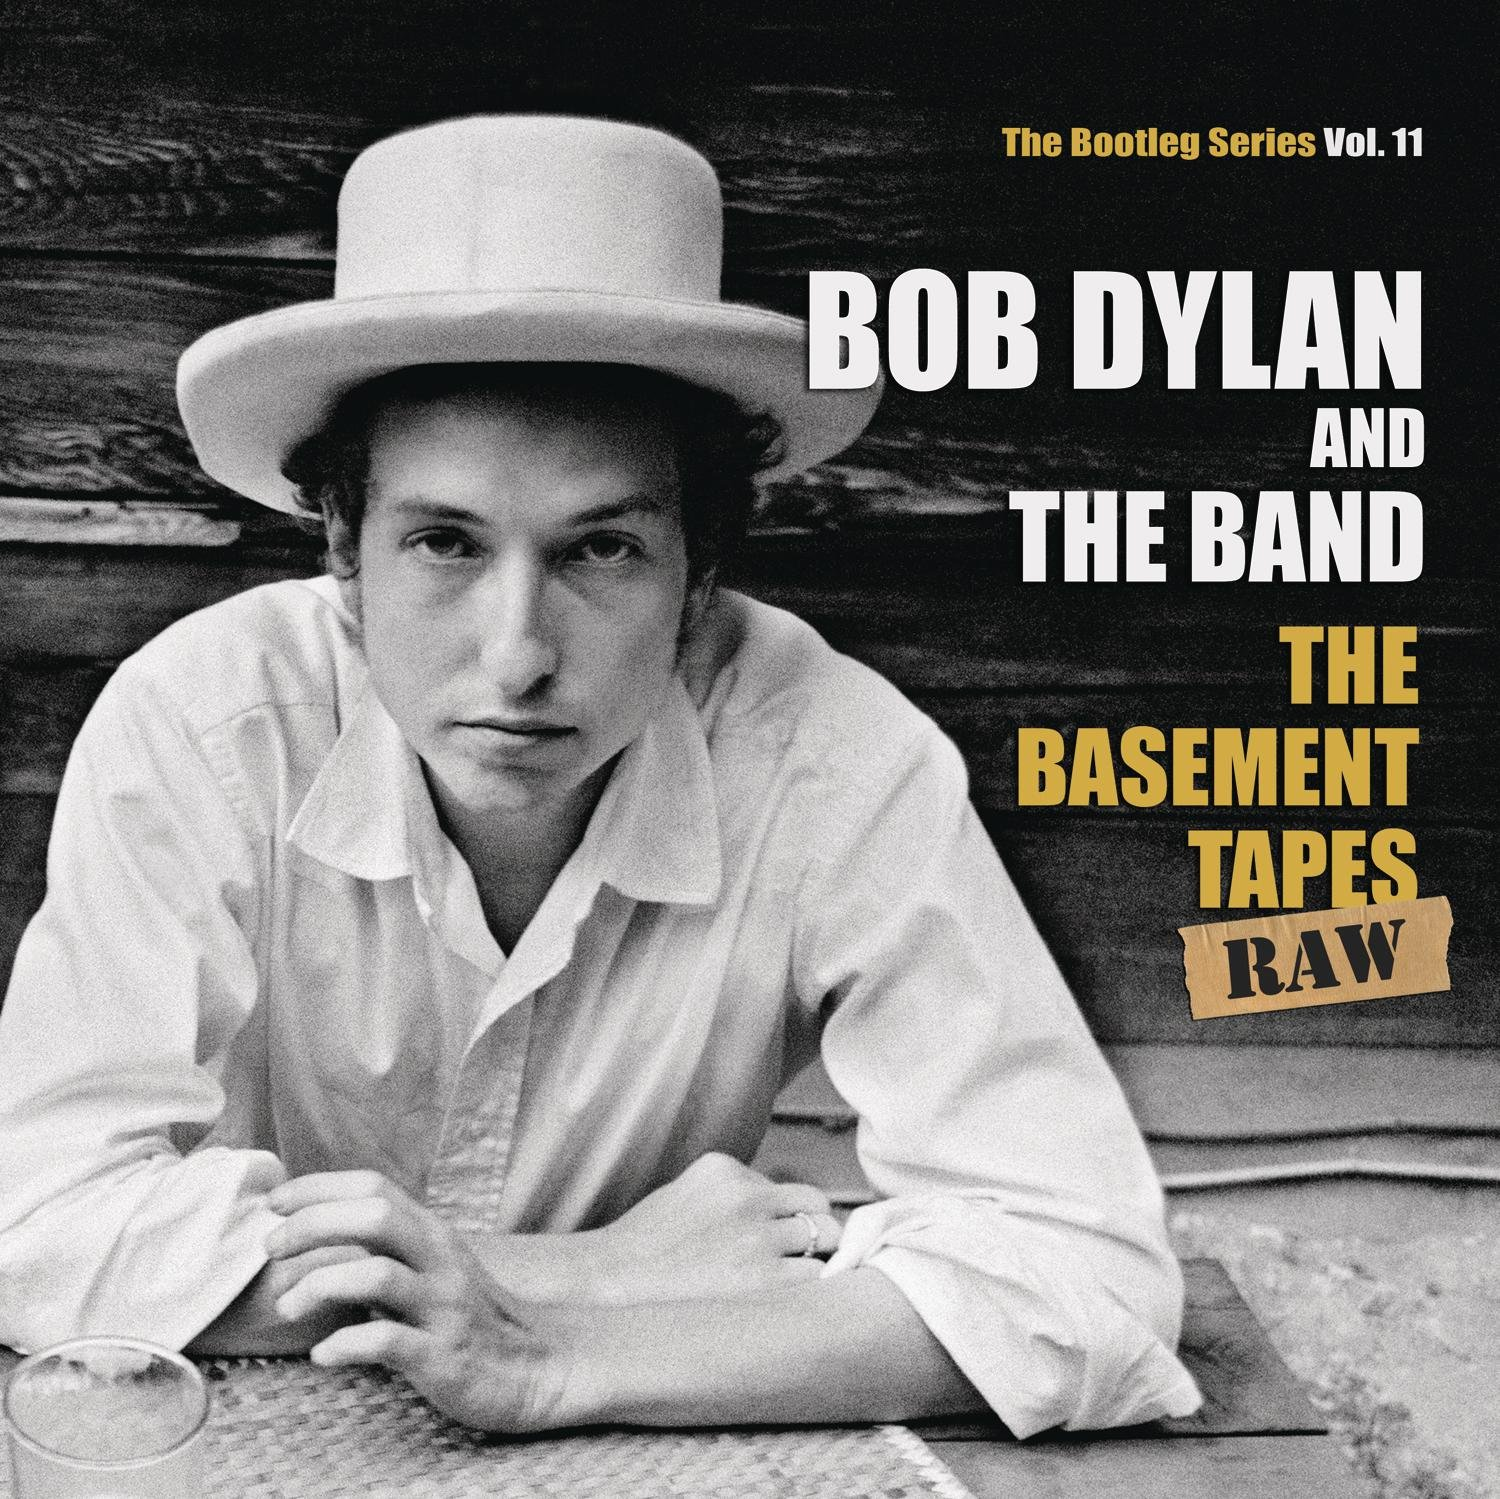 Bob Dylan and The Band - The Bootleg Series Vol. 11  The Basement Tapes Complete (2014) [FLAC] Download